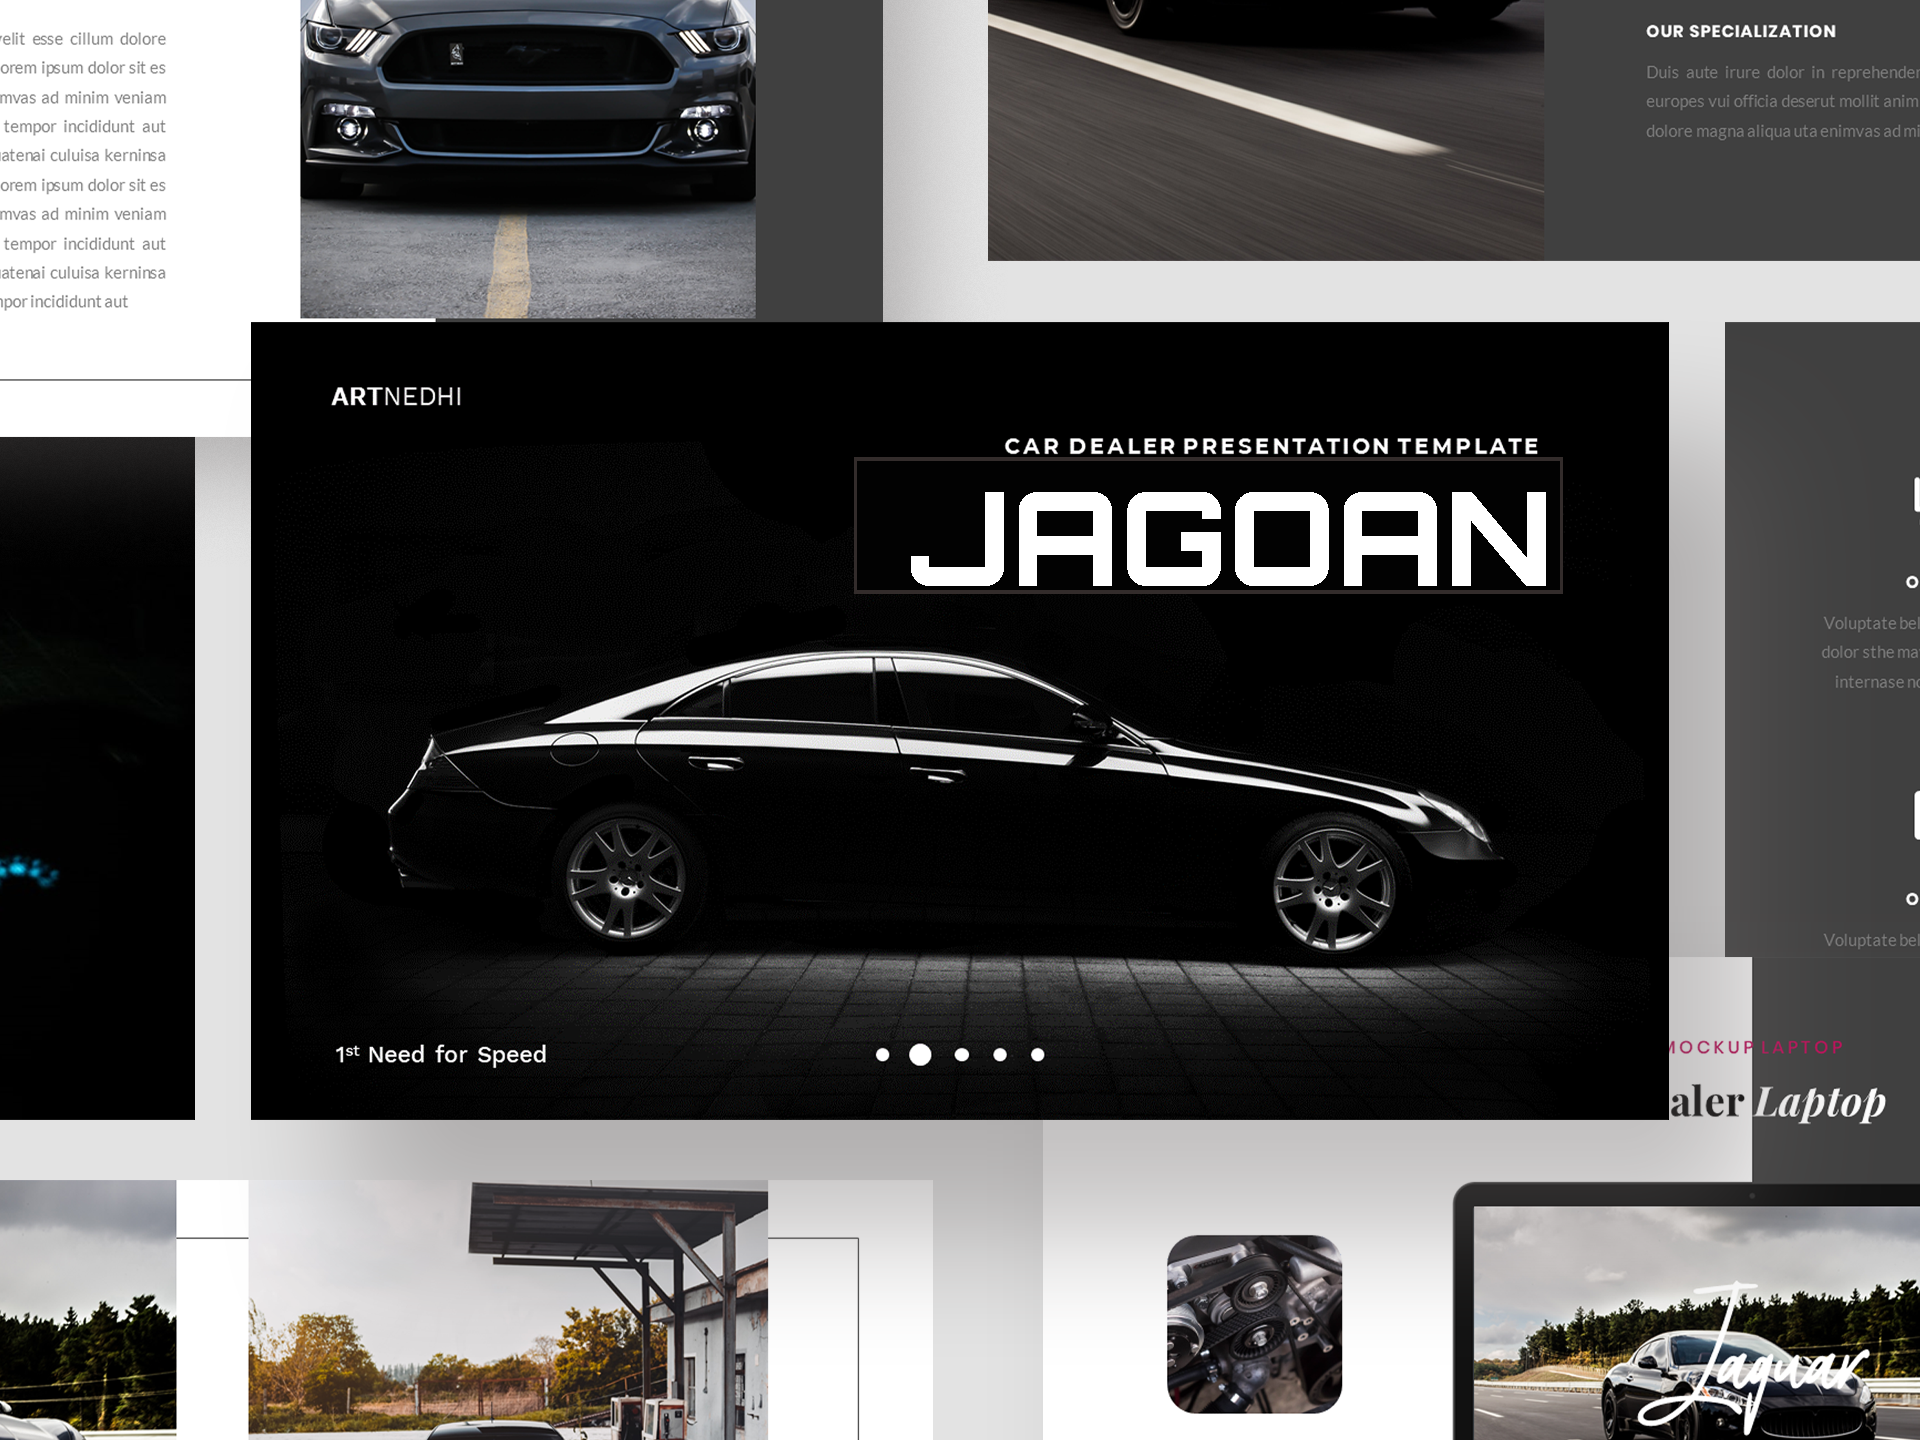 Download Free Jagoan Car Dealer Presentation Template Graphic By Jk Creative for Cricut Explore, Silhouette and other cutting machines.